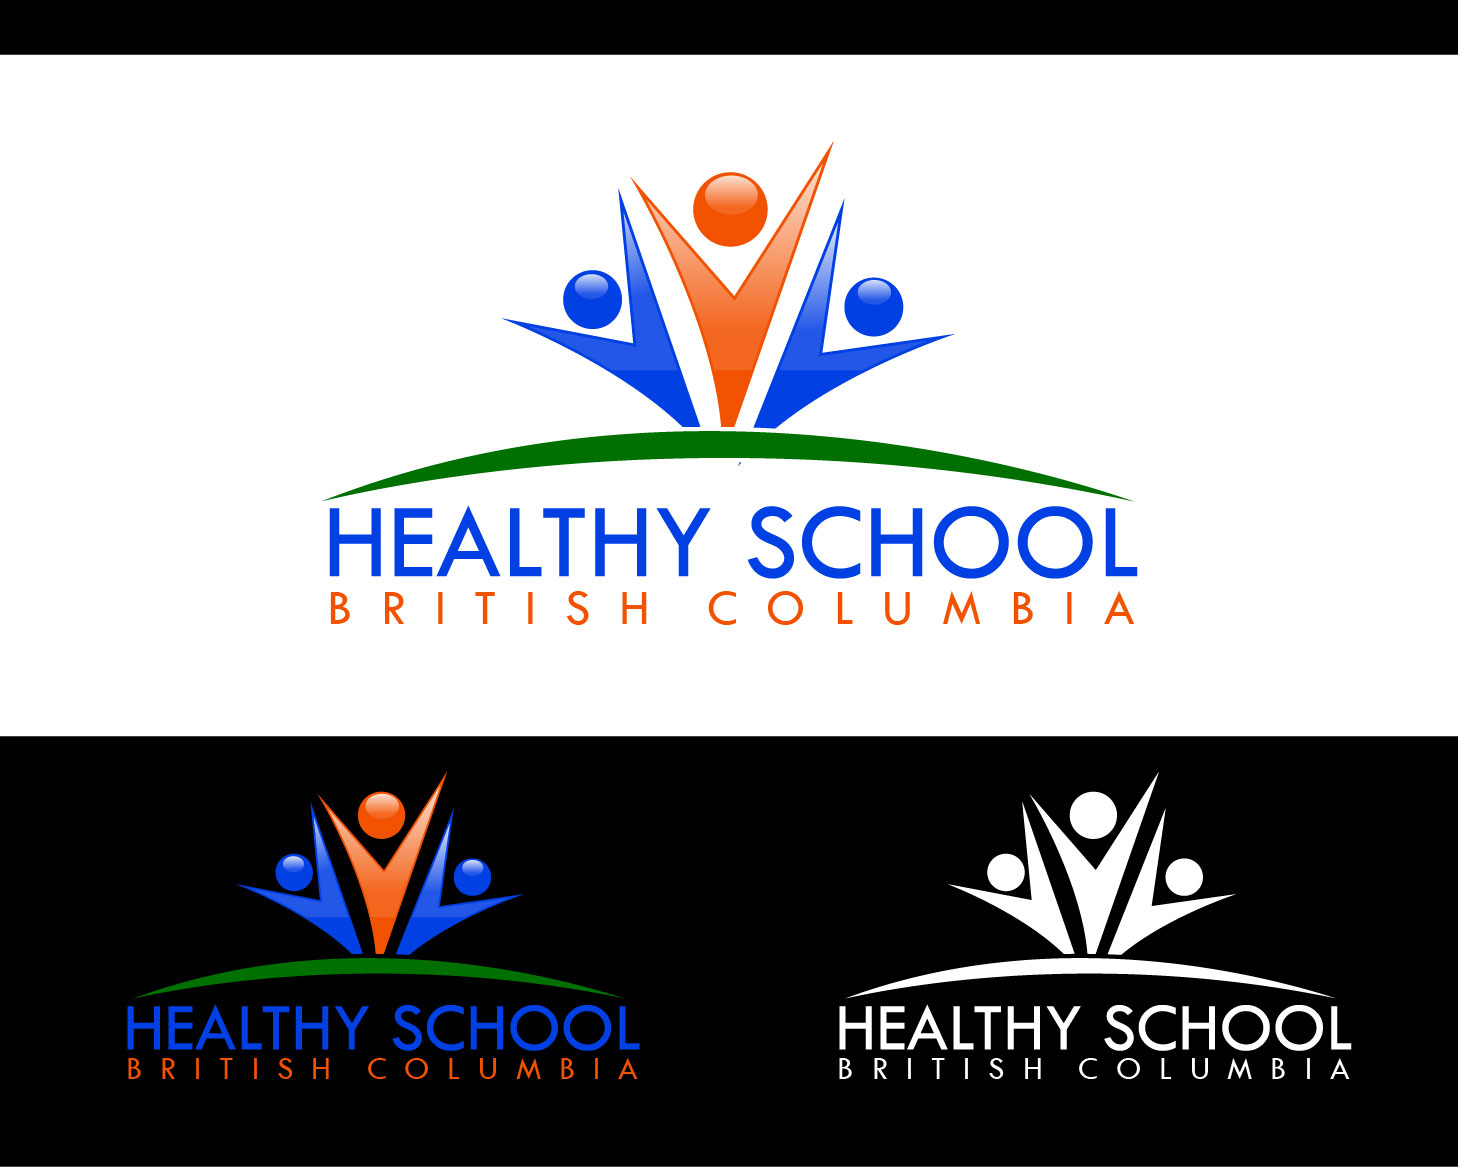 Logo Design by Private User - Entry No. 419 in the Logo Design Contest SImple, Creative and Clean Logo Design for Healthy Schools British Columbia, Canada.